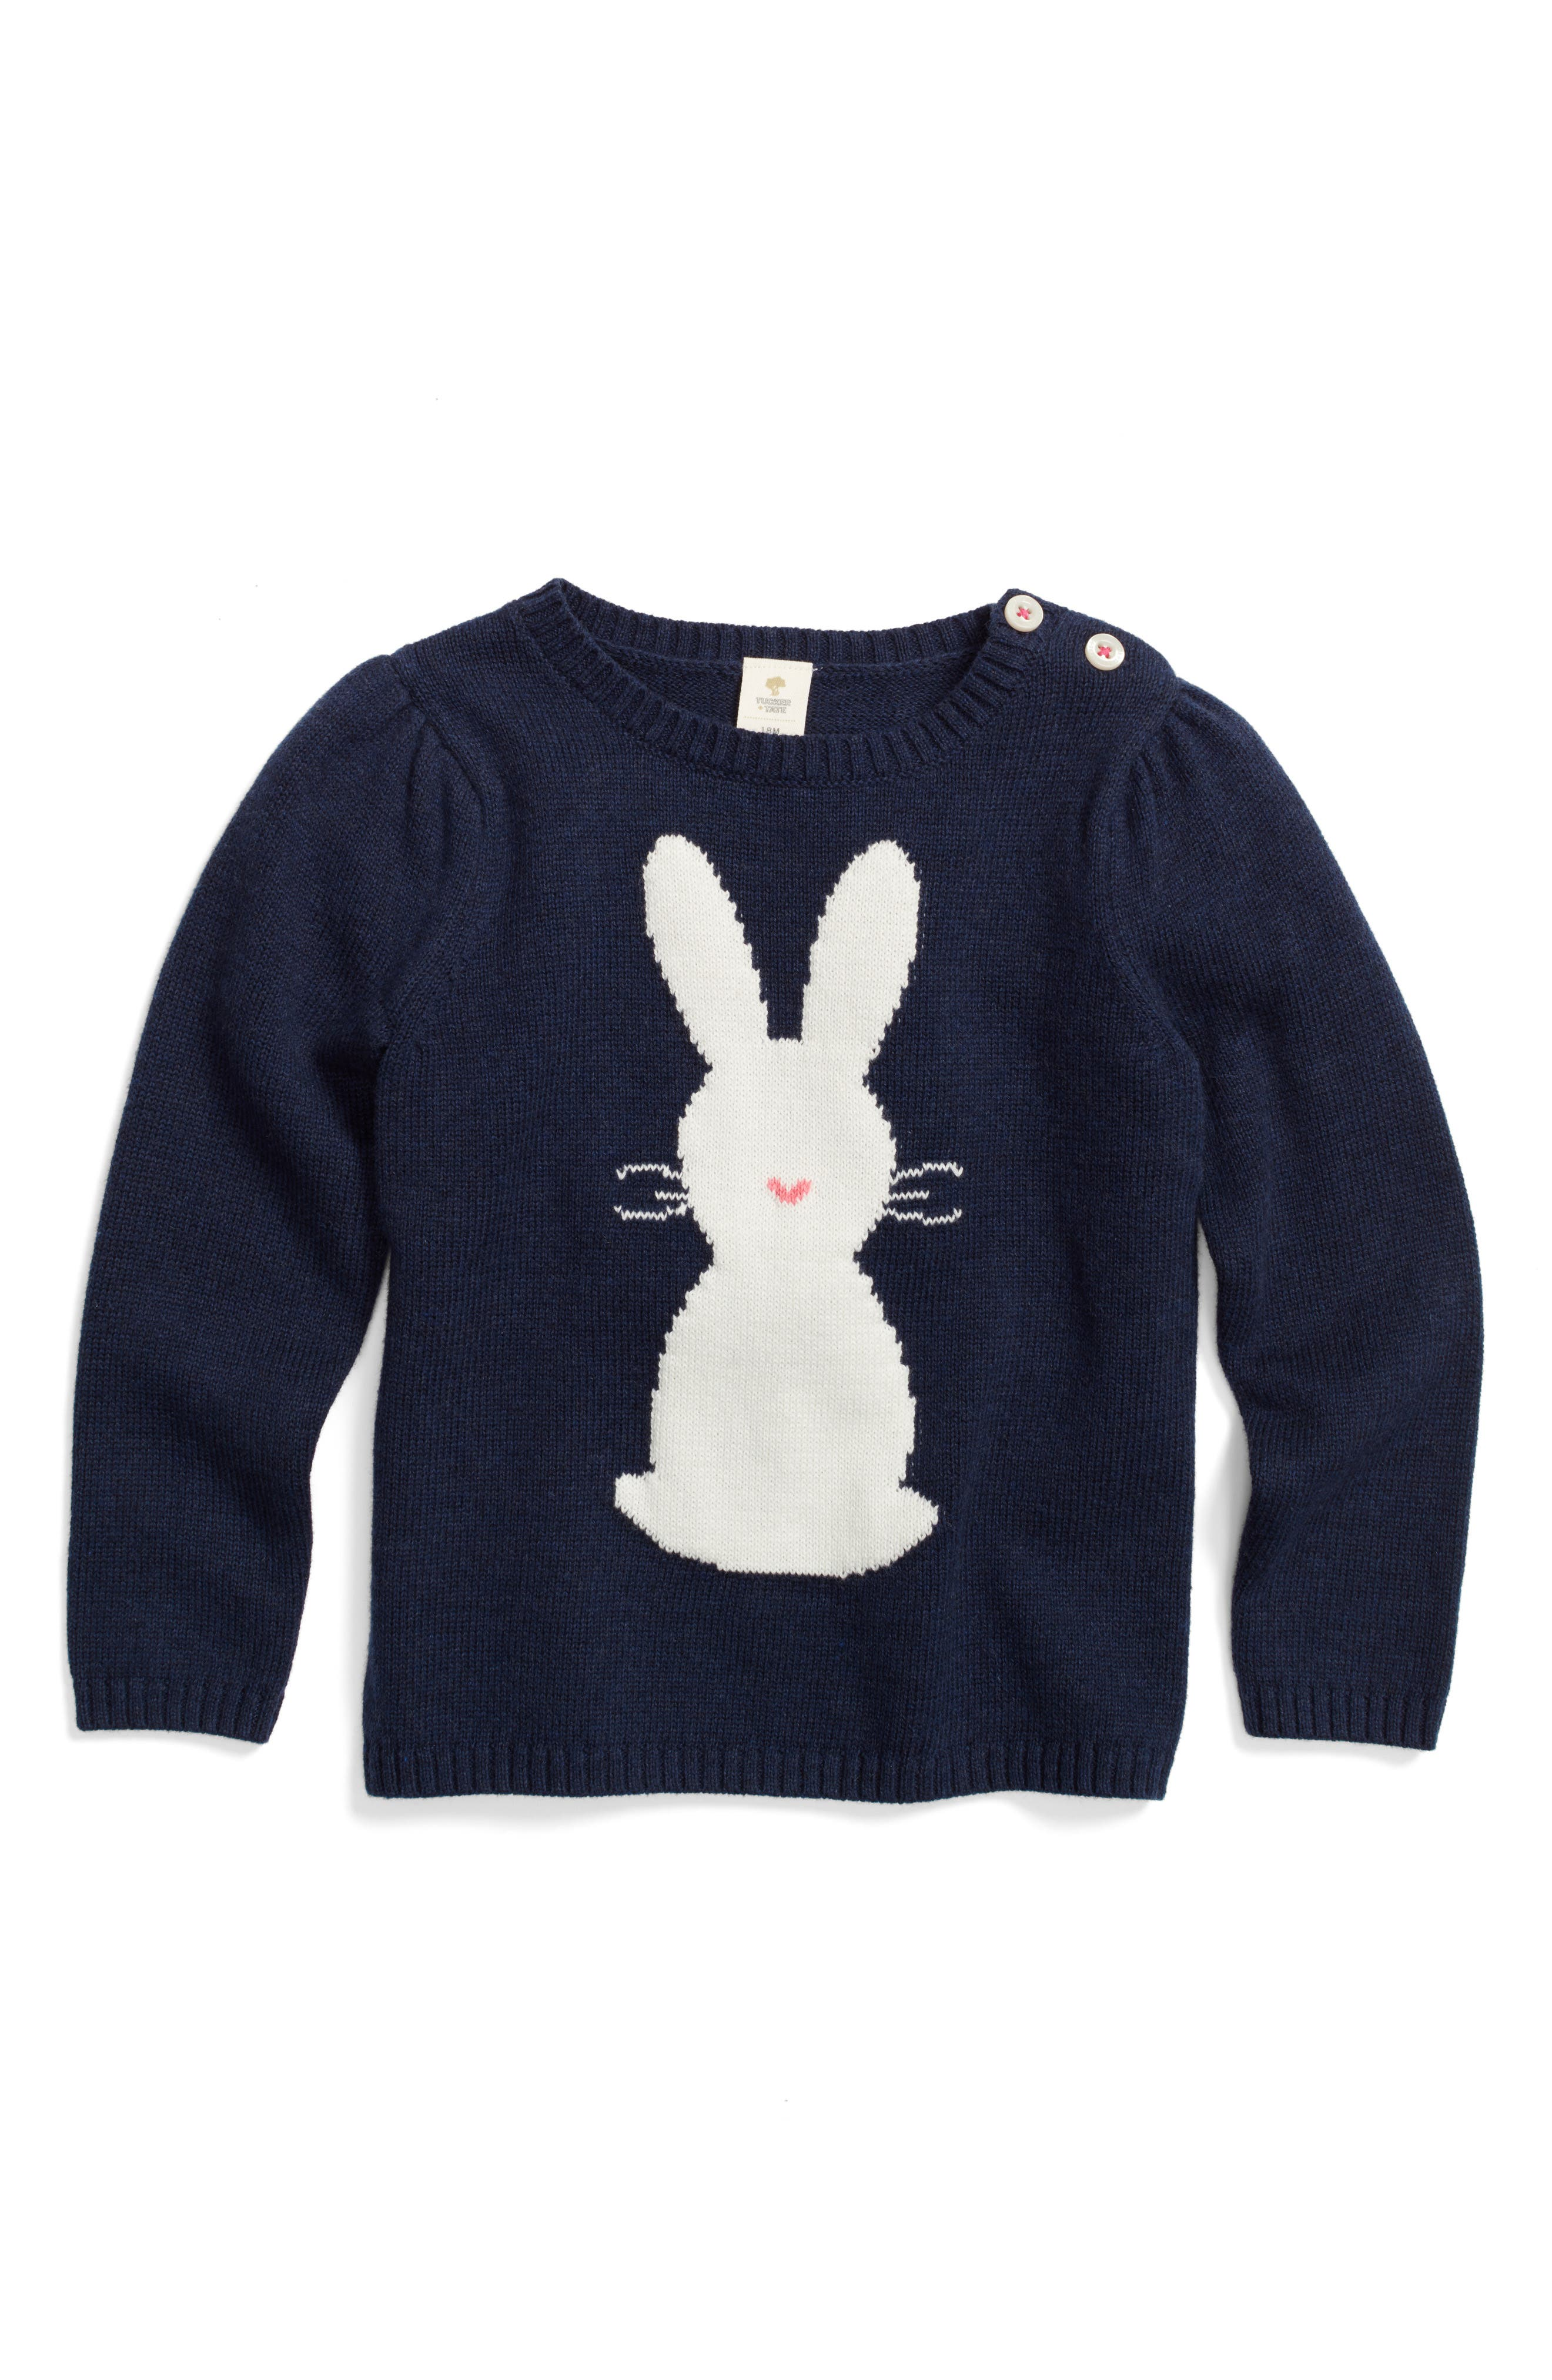 Bunny Sweater,                             Alternate thumbnail 2, color,                             410